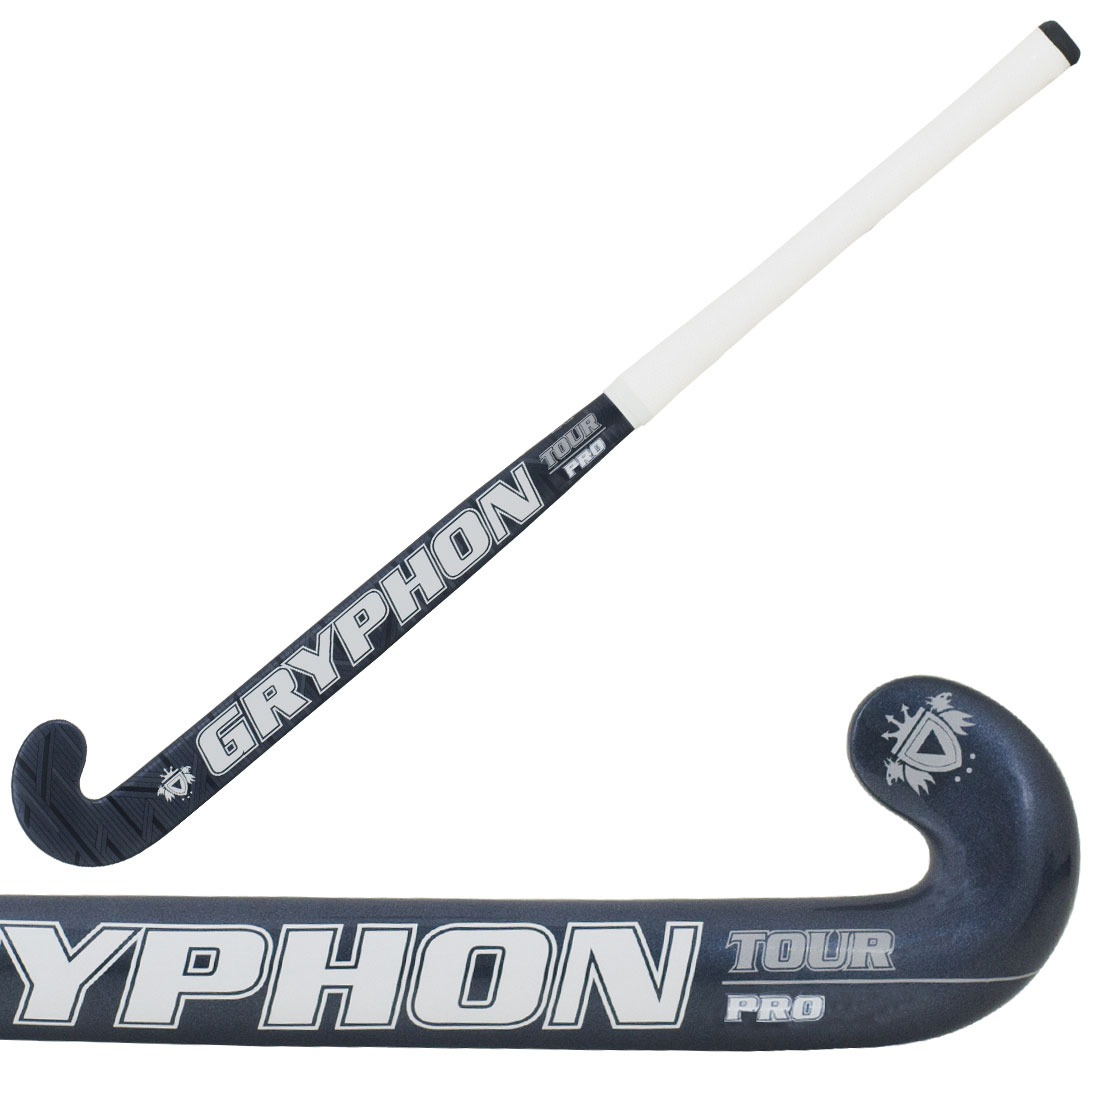 Gryphon Tour Pro Composite Field Hockey Stick by